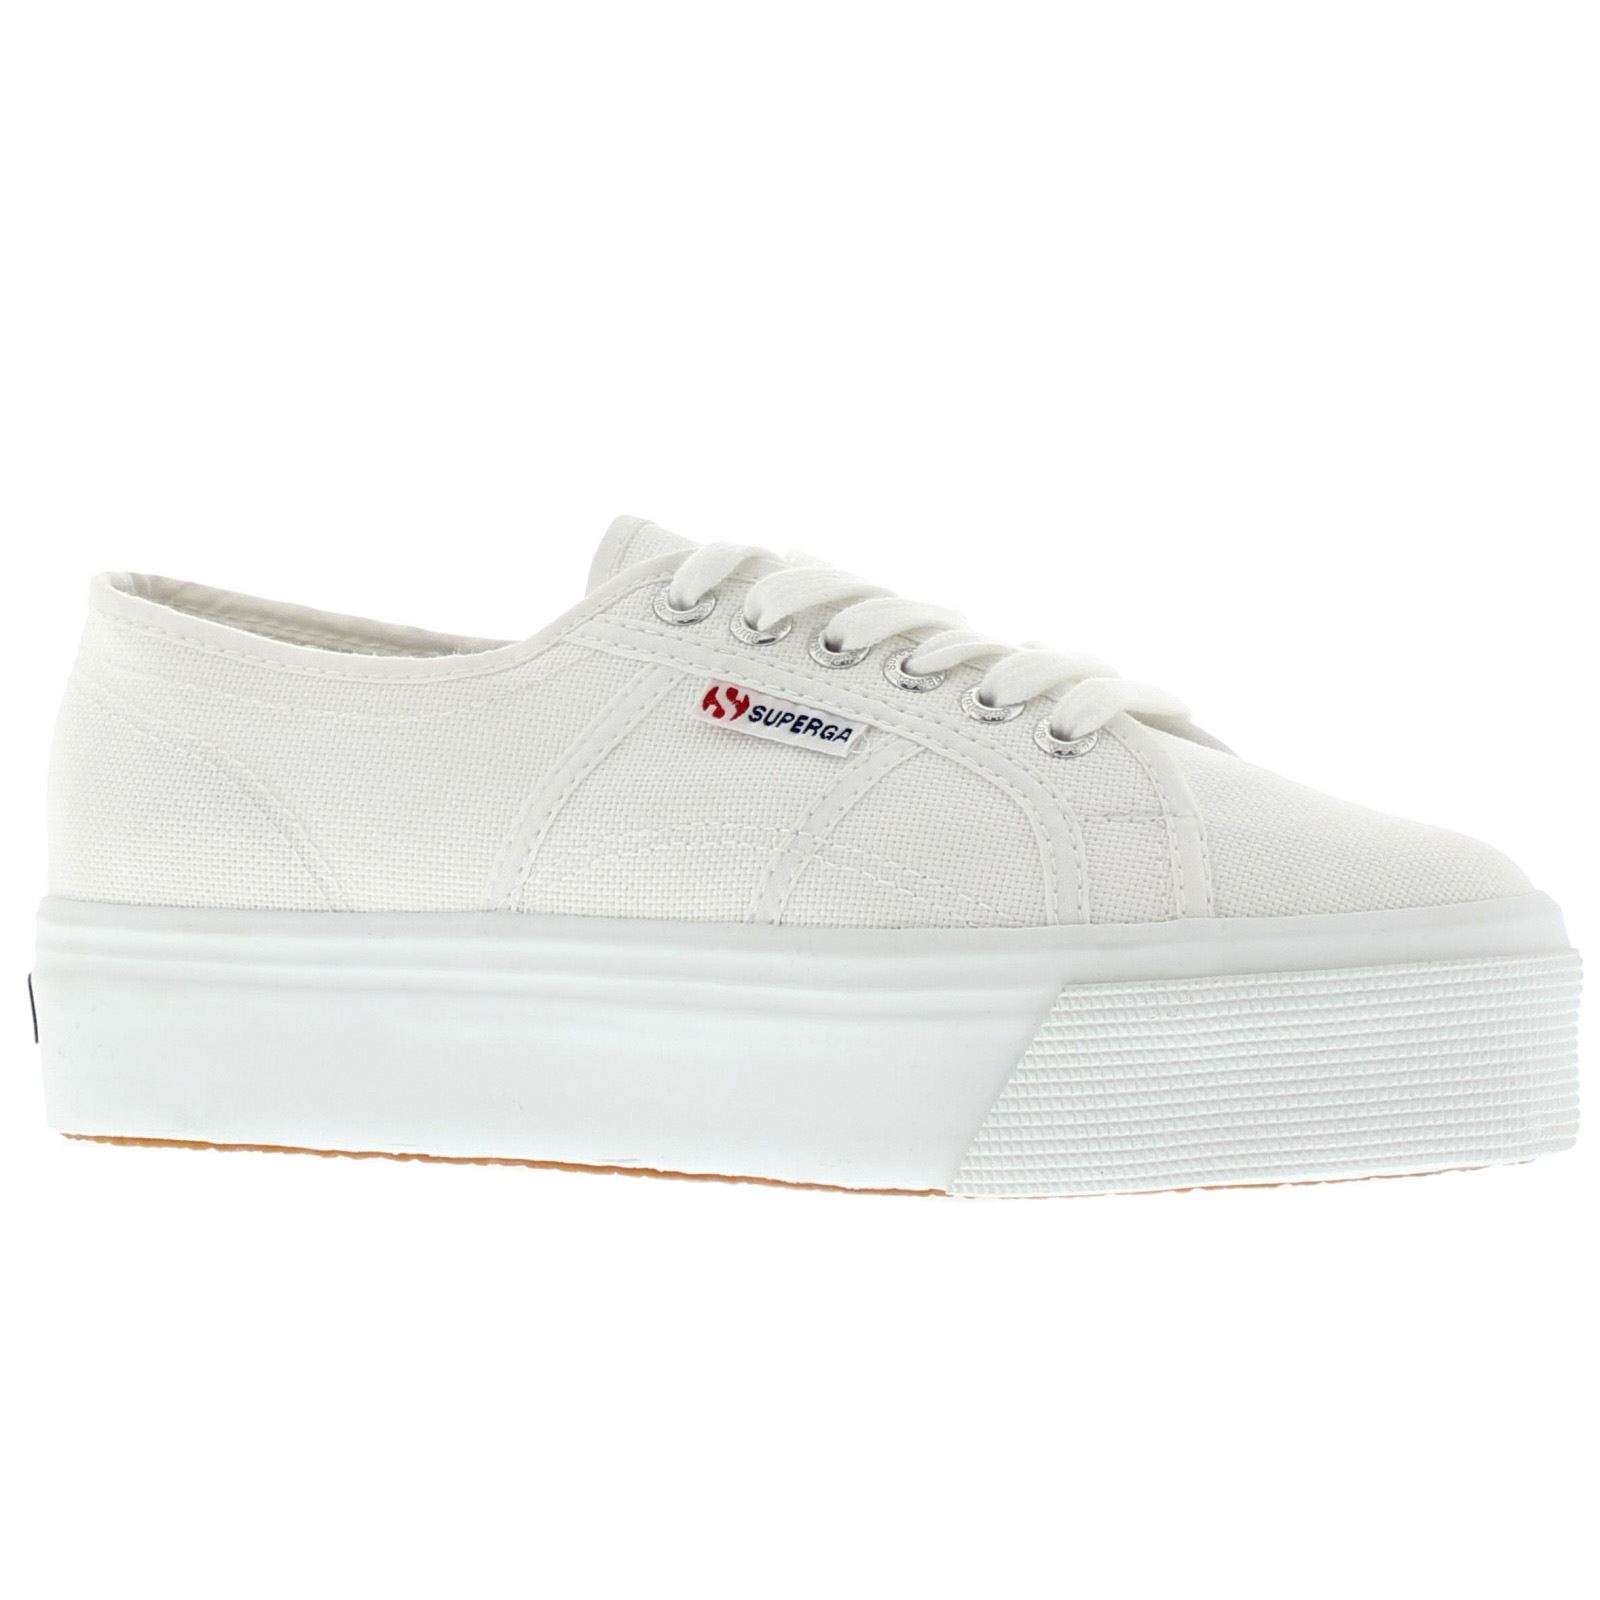 9dccf802a90 Superga 2790 Acotw Linea Up And Down White Womens Shoes